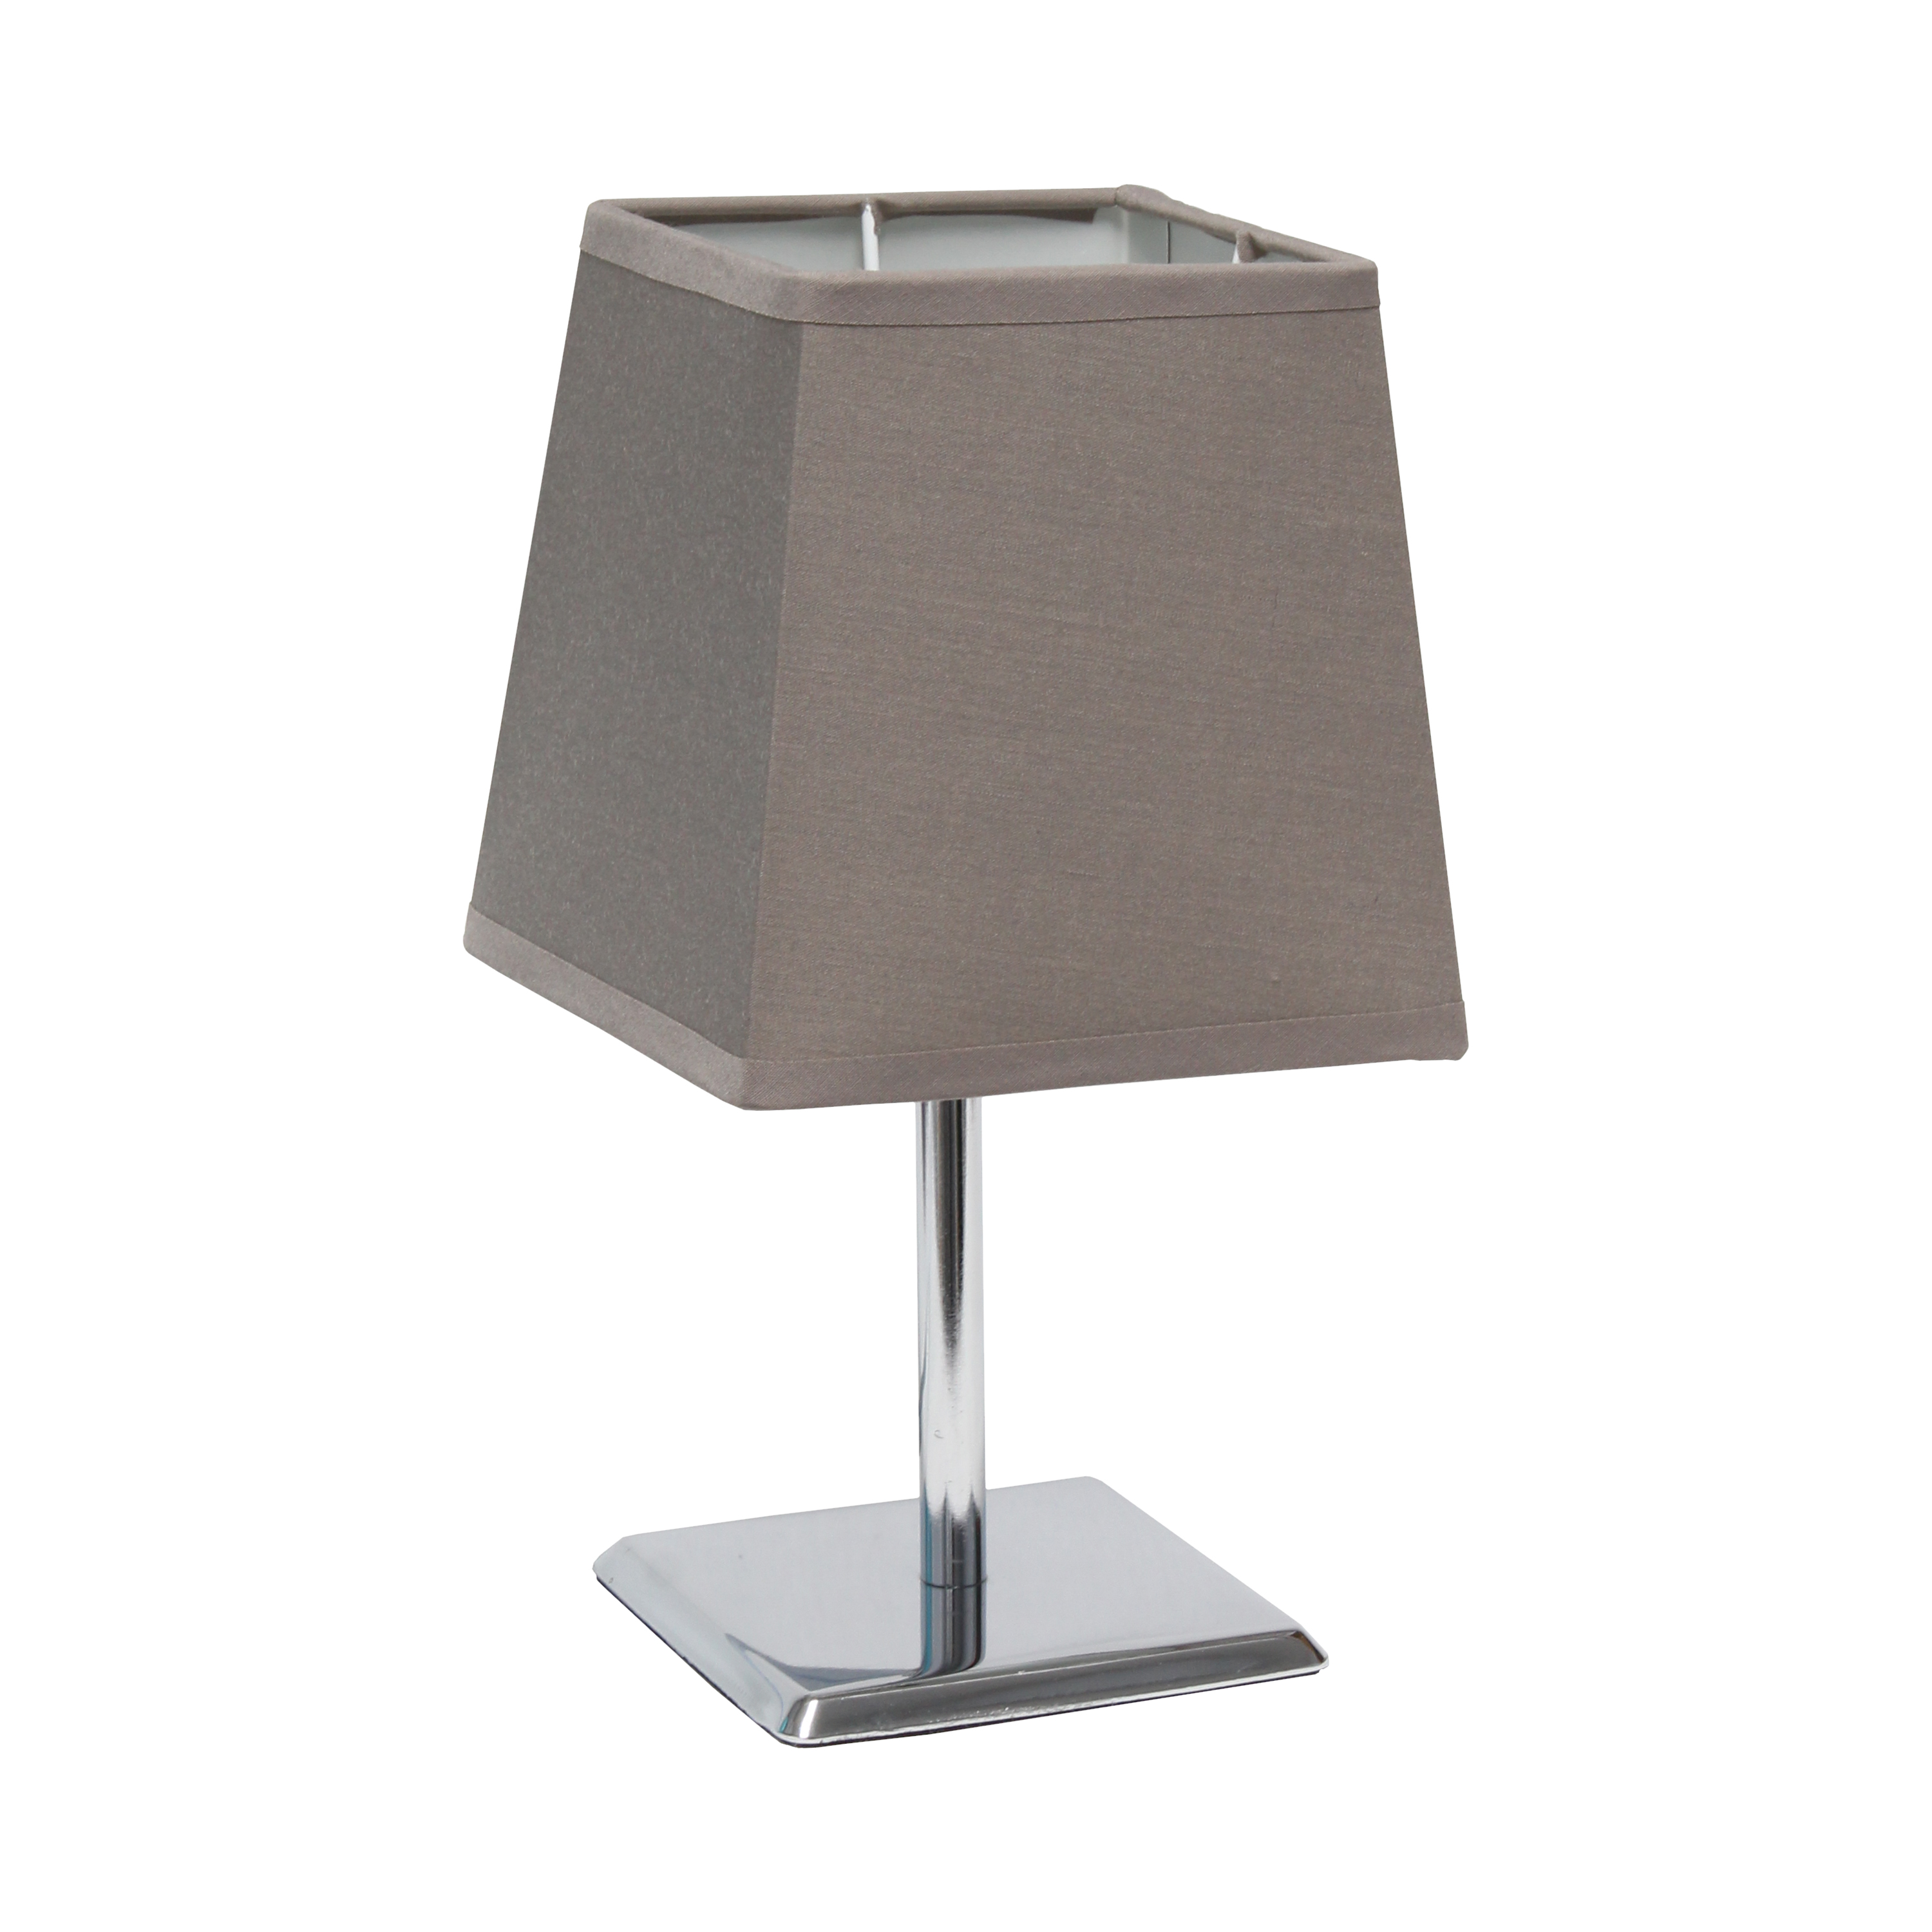 Simple Designs Mini Chrome Table Lamp with Squared Empire Fabric Shade